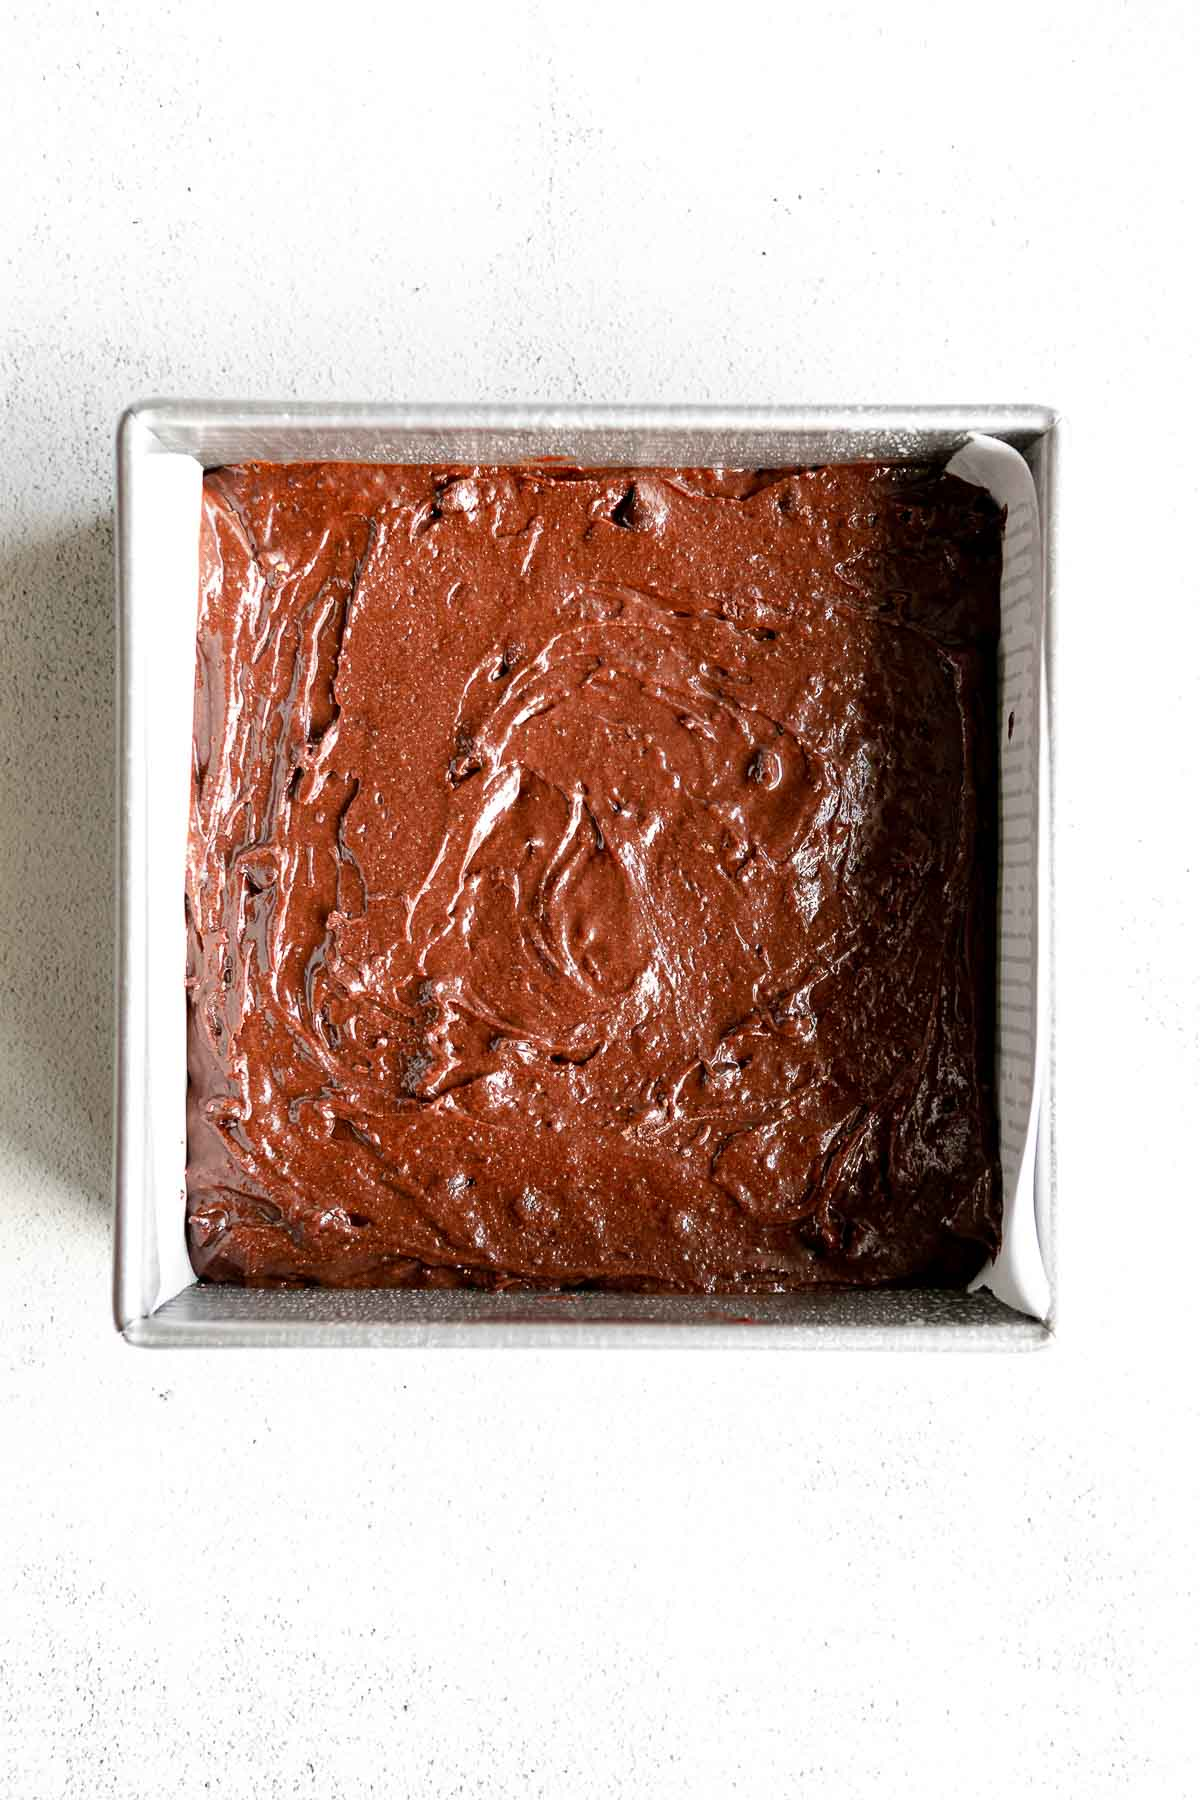 brownie batter in a pan before baking